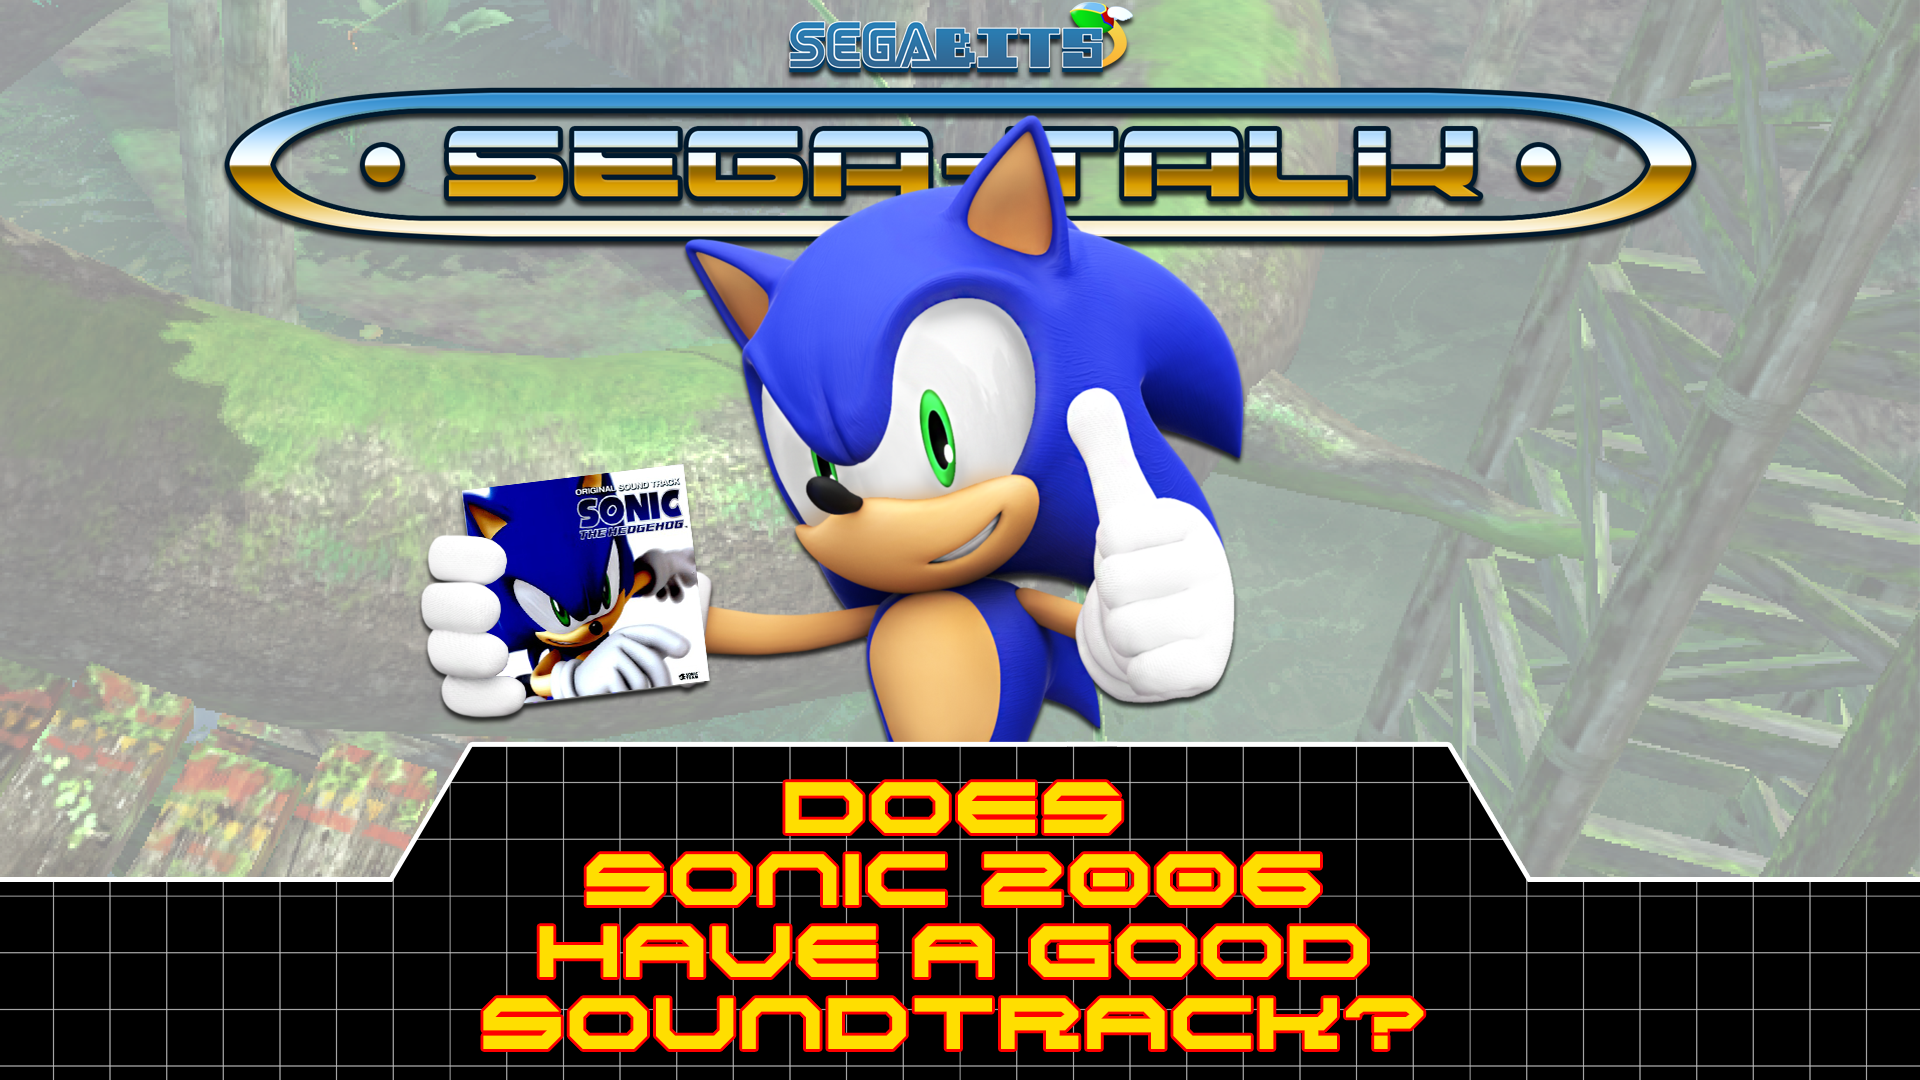 Sega Talk Does Sonic The Hedgehog 2006 Have A Good Soundtrack